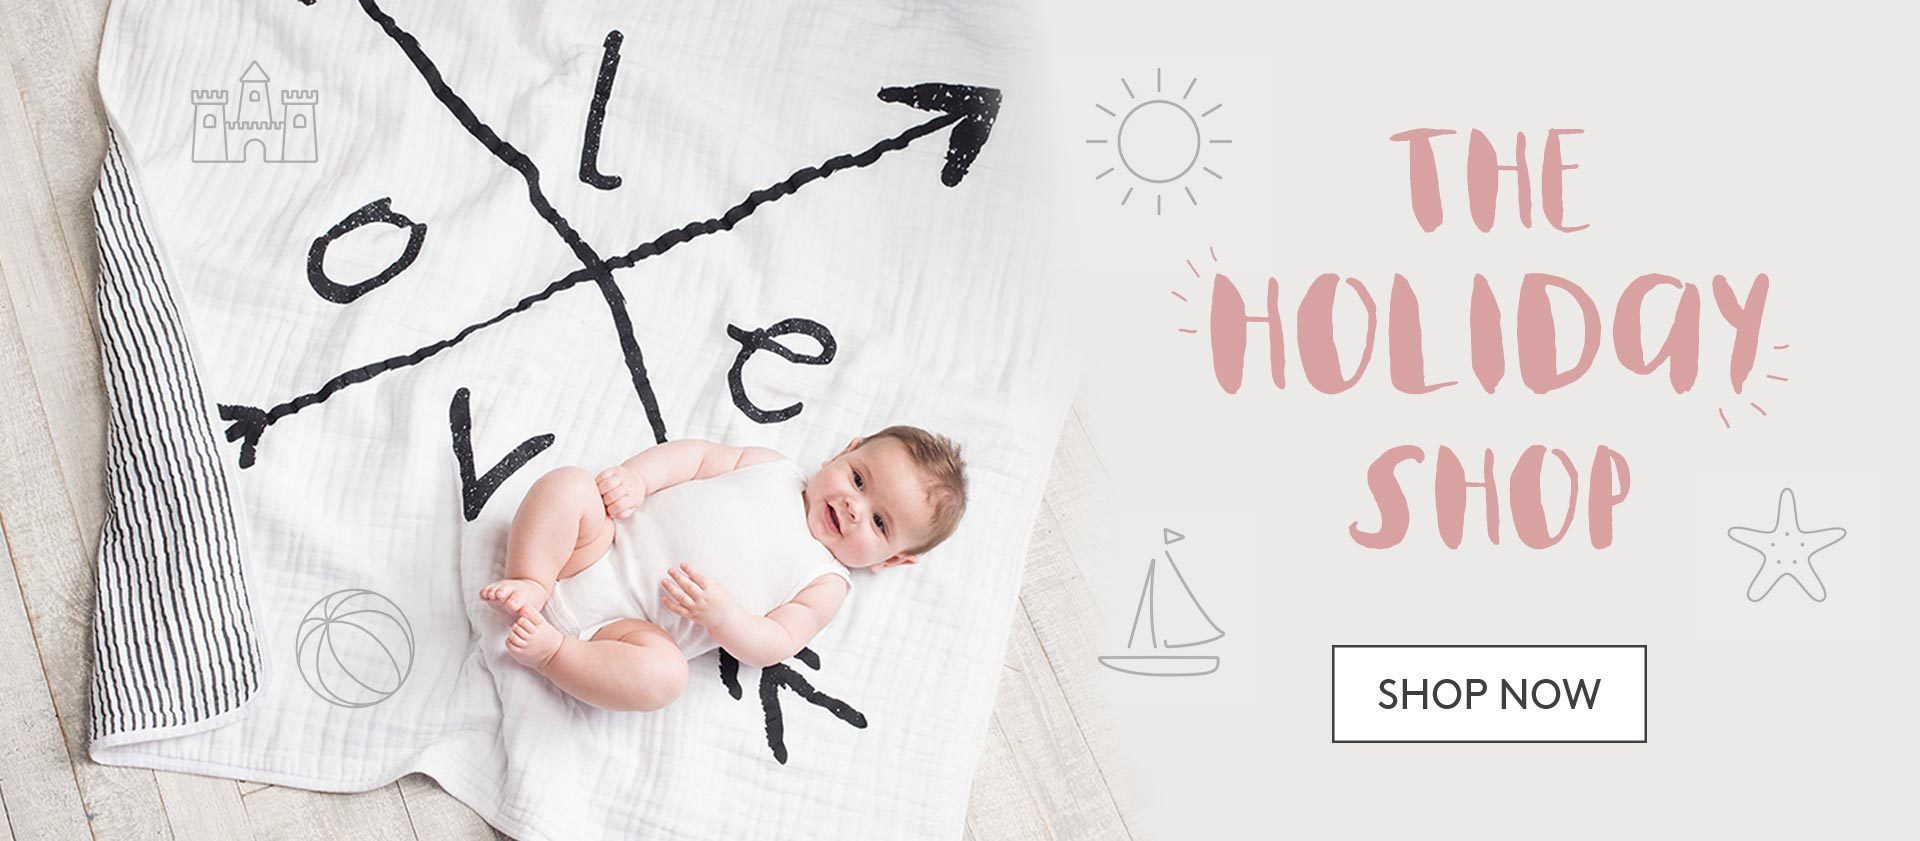 SHOP MUST HAVE BABY AND TODDLER HOLIDAY PRODUCTS